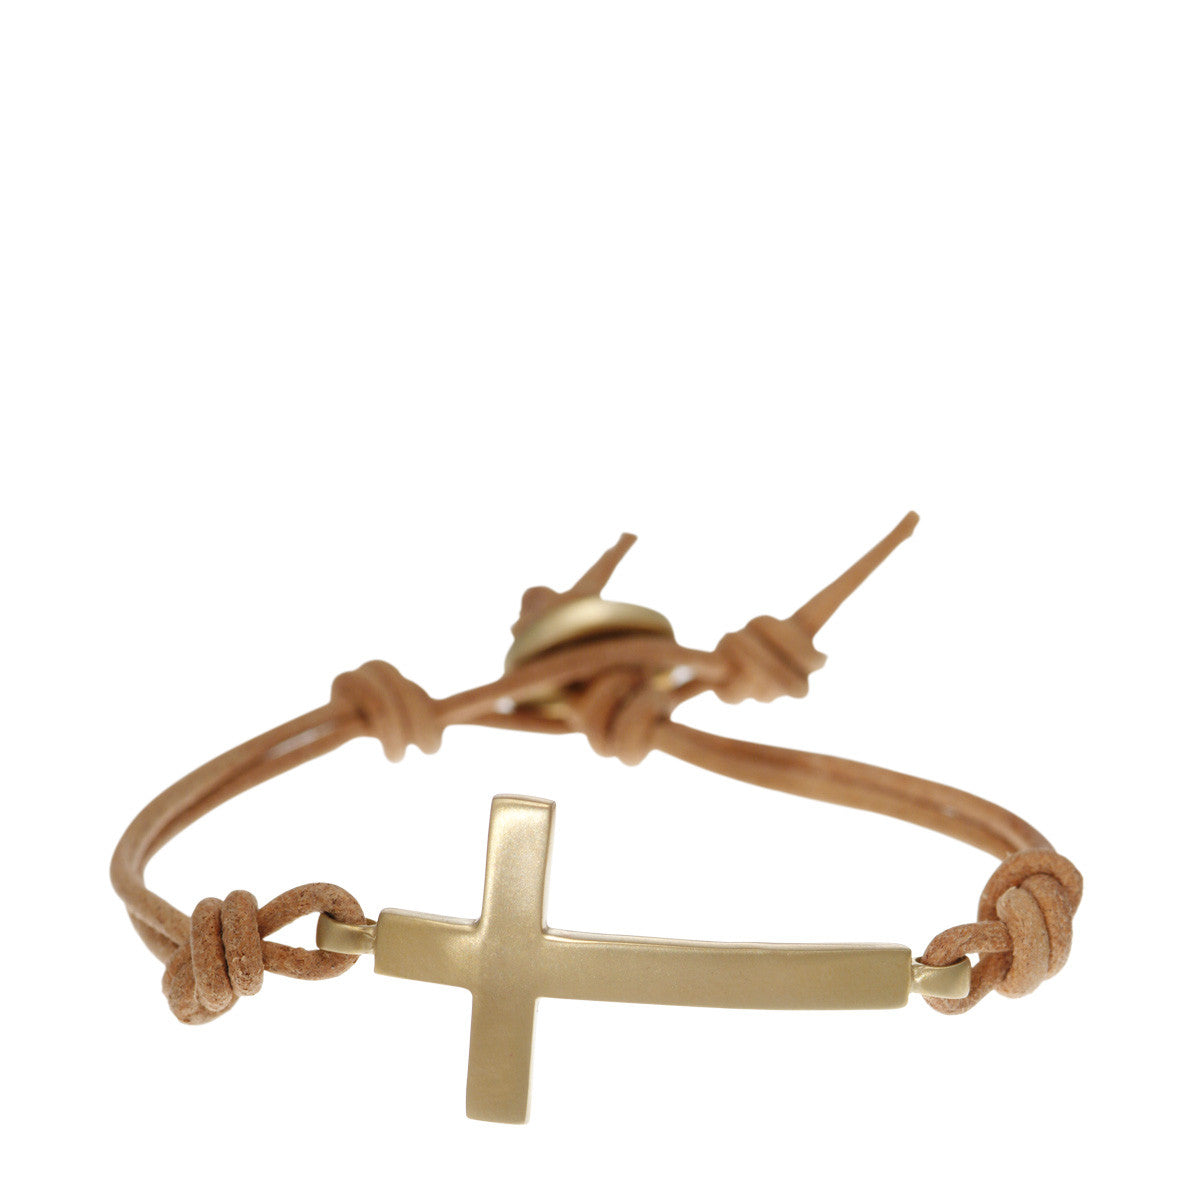 10K Gold Cross Bracelet on Natural Leather